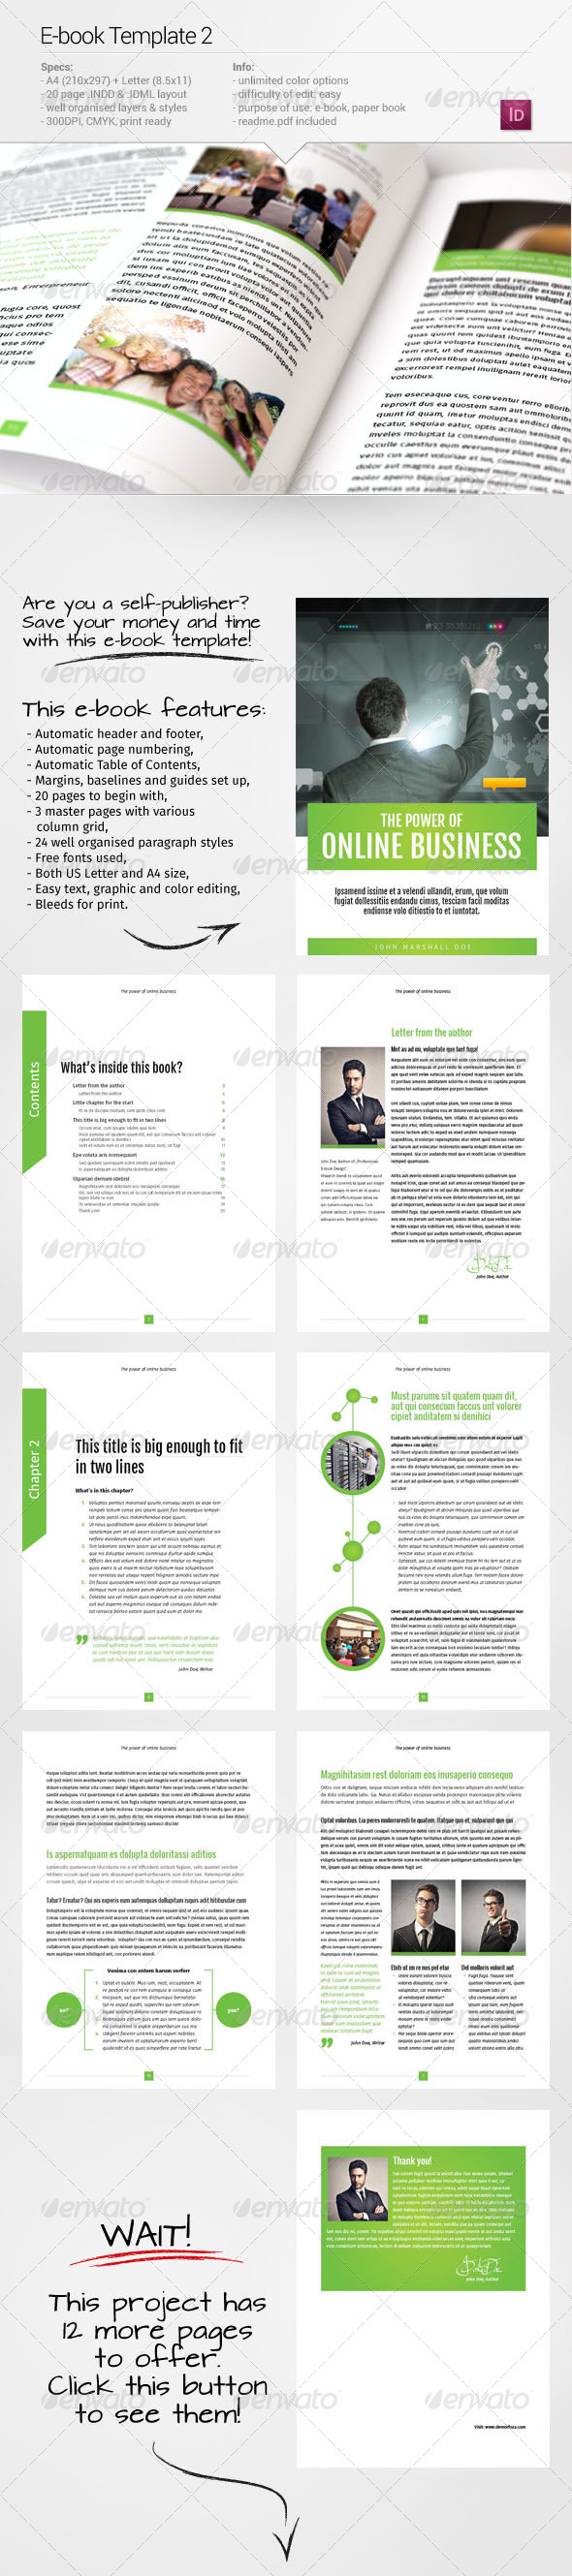 GraphicRiver E-book Template 2 6757629